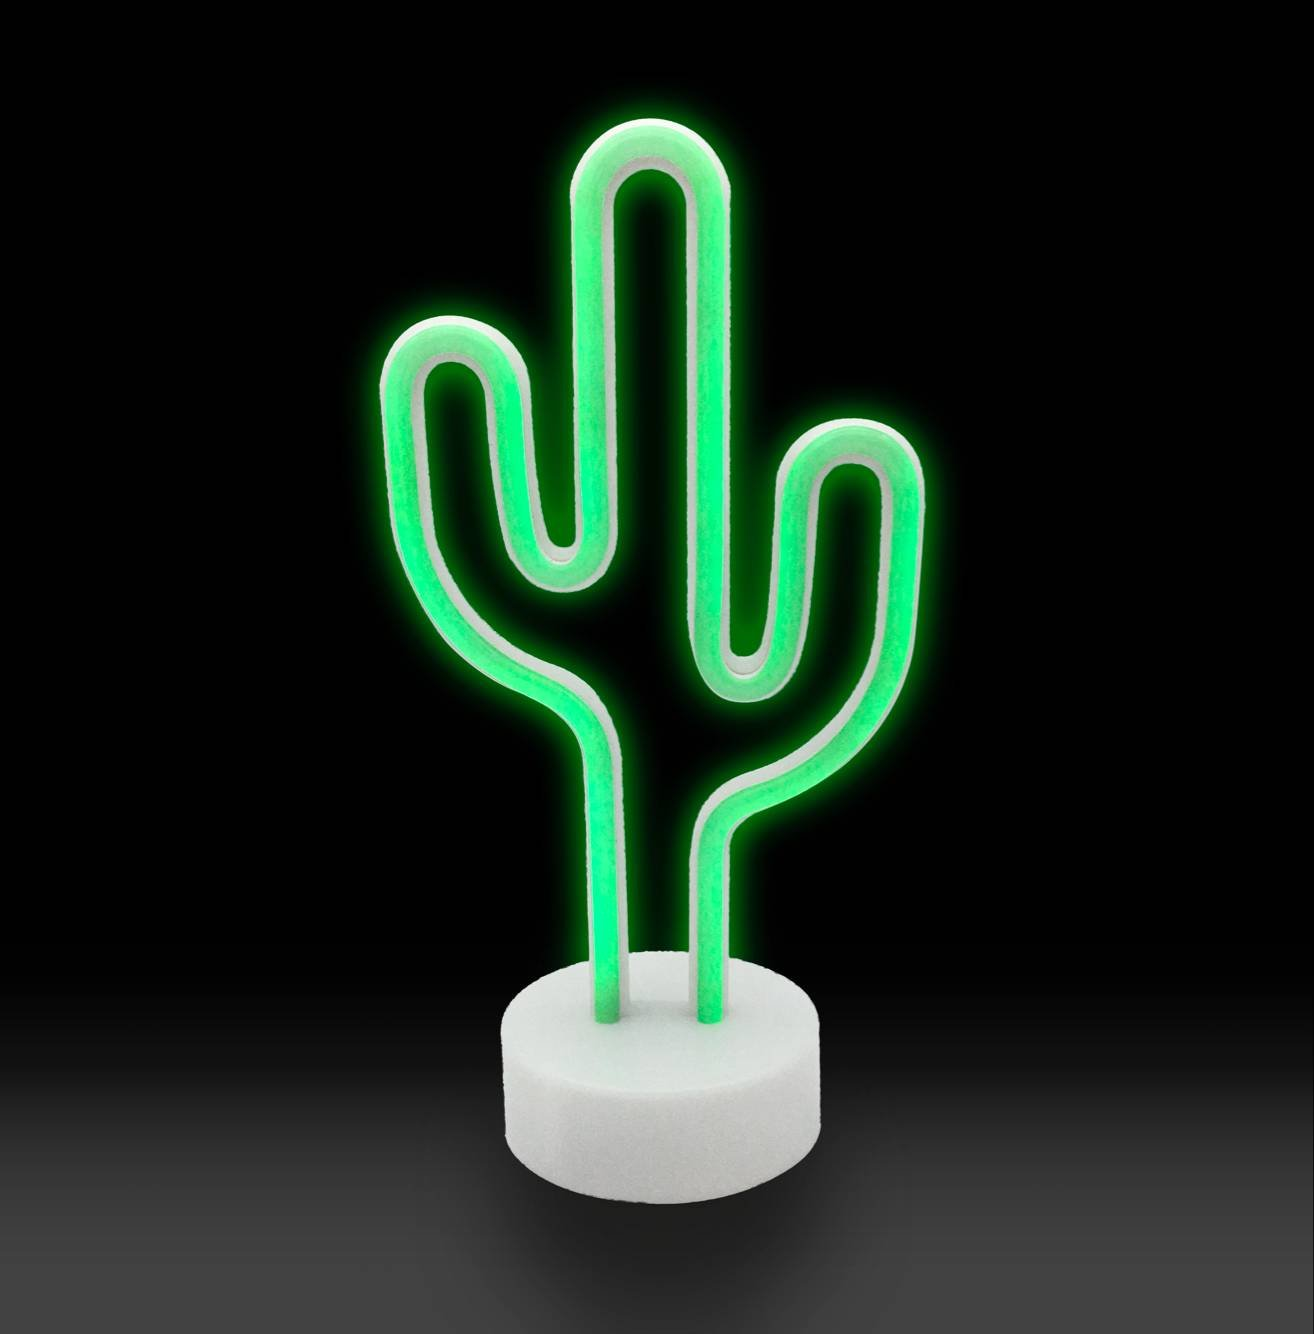 Yeaheo Neon Signs,Cactus Decor Night Light Neon Decor LED Neon Lights,for Bedroom Garden Birthday Party,Kids Room, Living Room, Wedding Bathroom Man Cave Party Decor Cactus(Battery+USB Style)